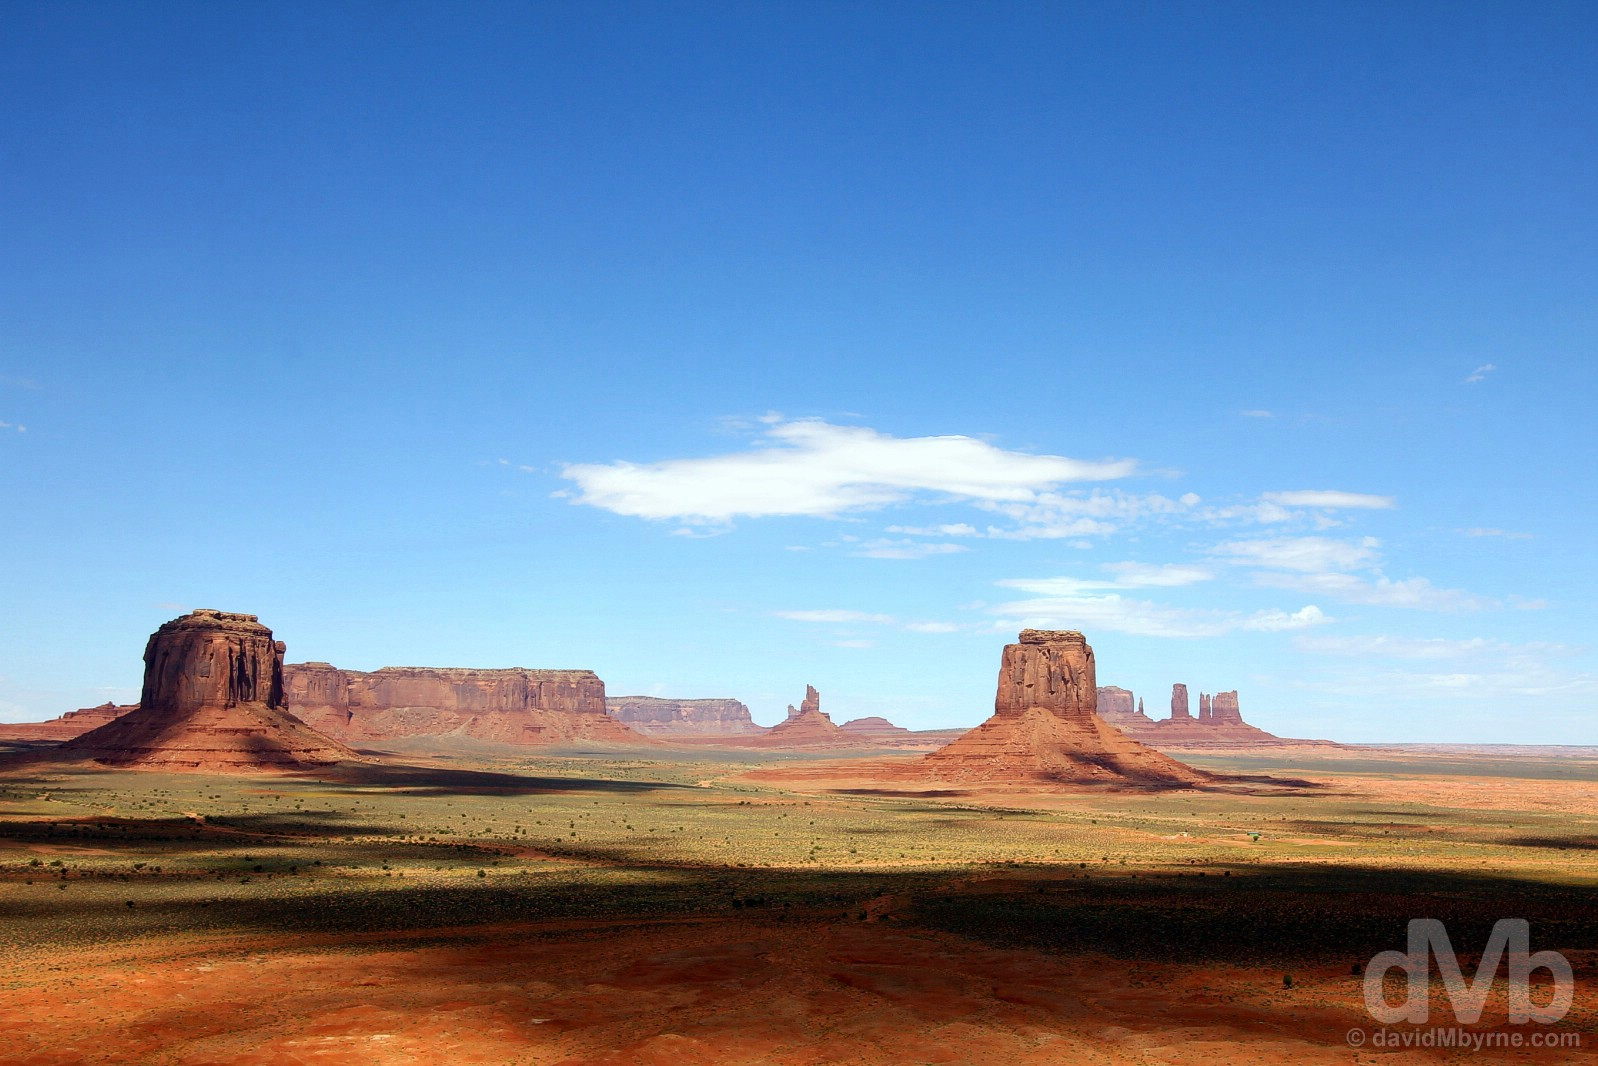 The view from the Artist Point Overlook on the Valley Drive in Monument Valley, Navajo Nation, Arizona. September 11, 2016.